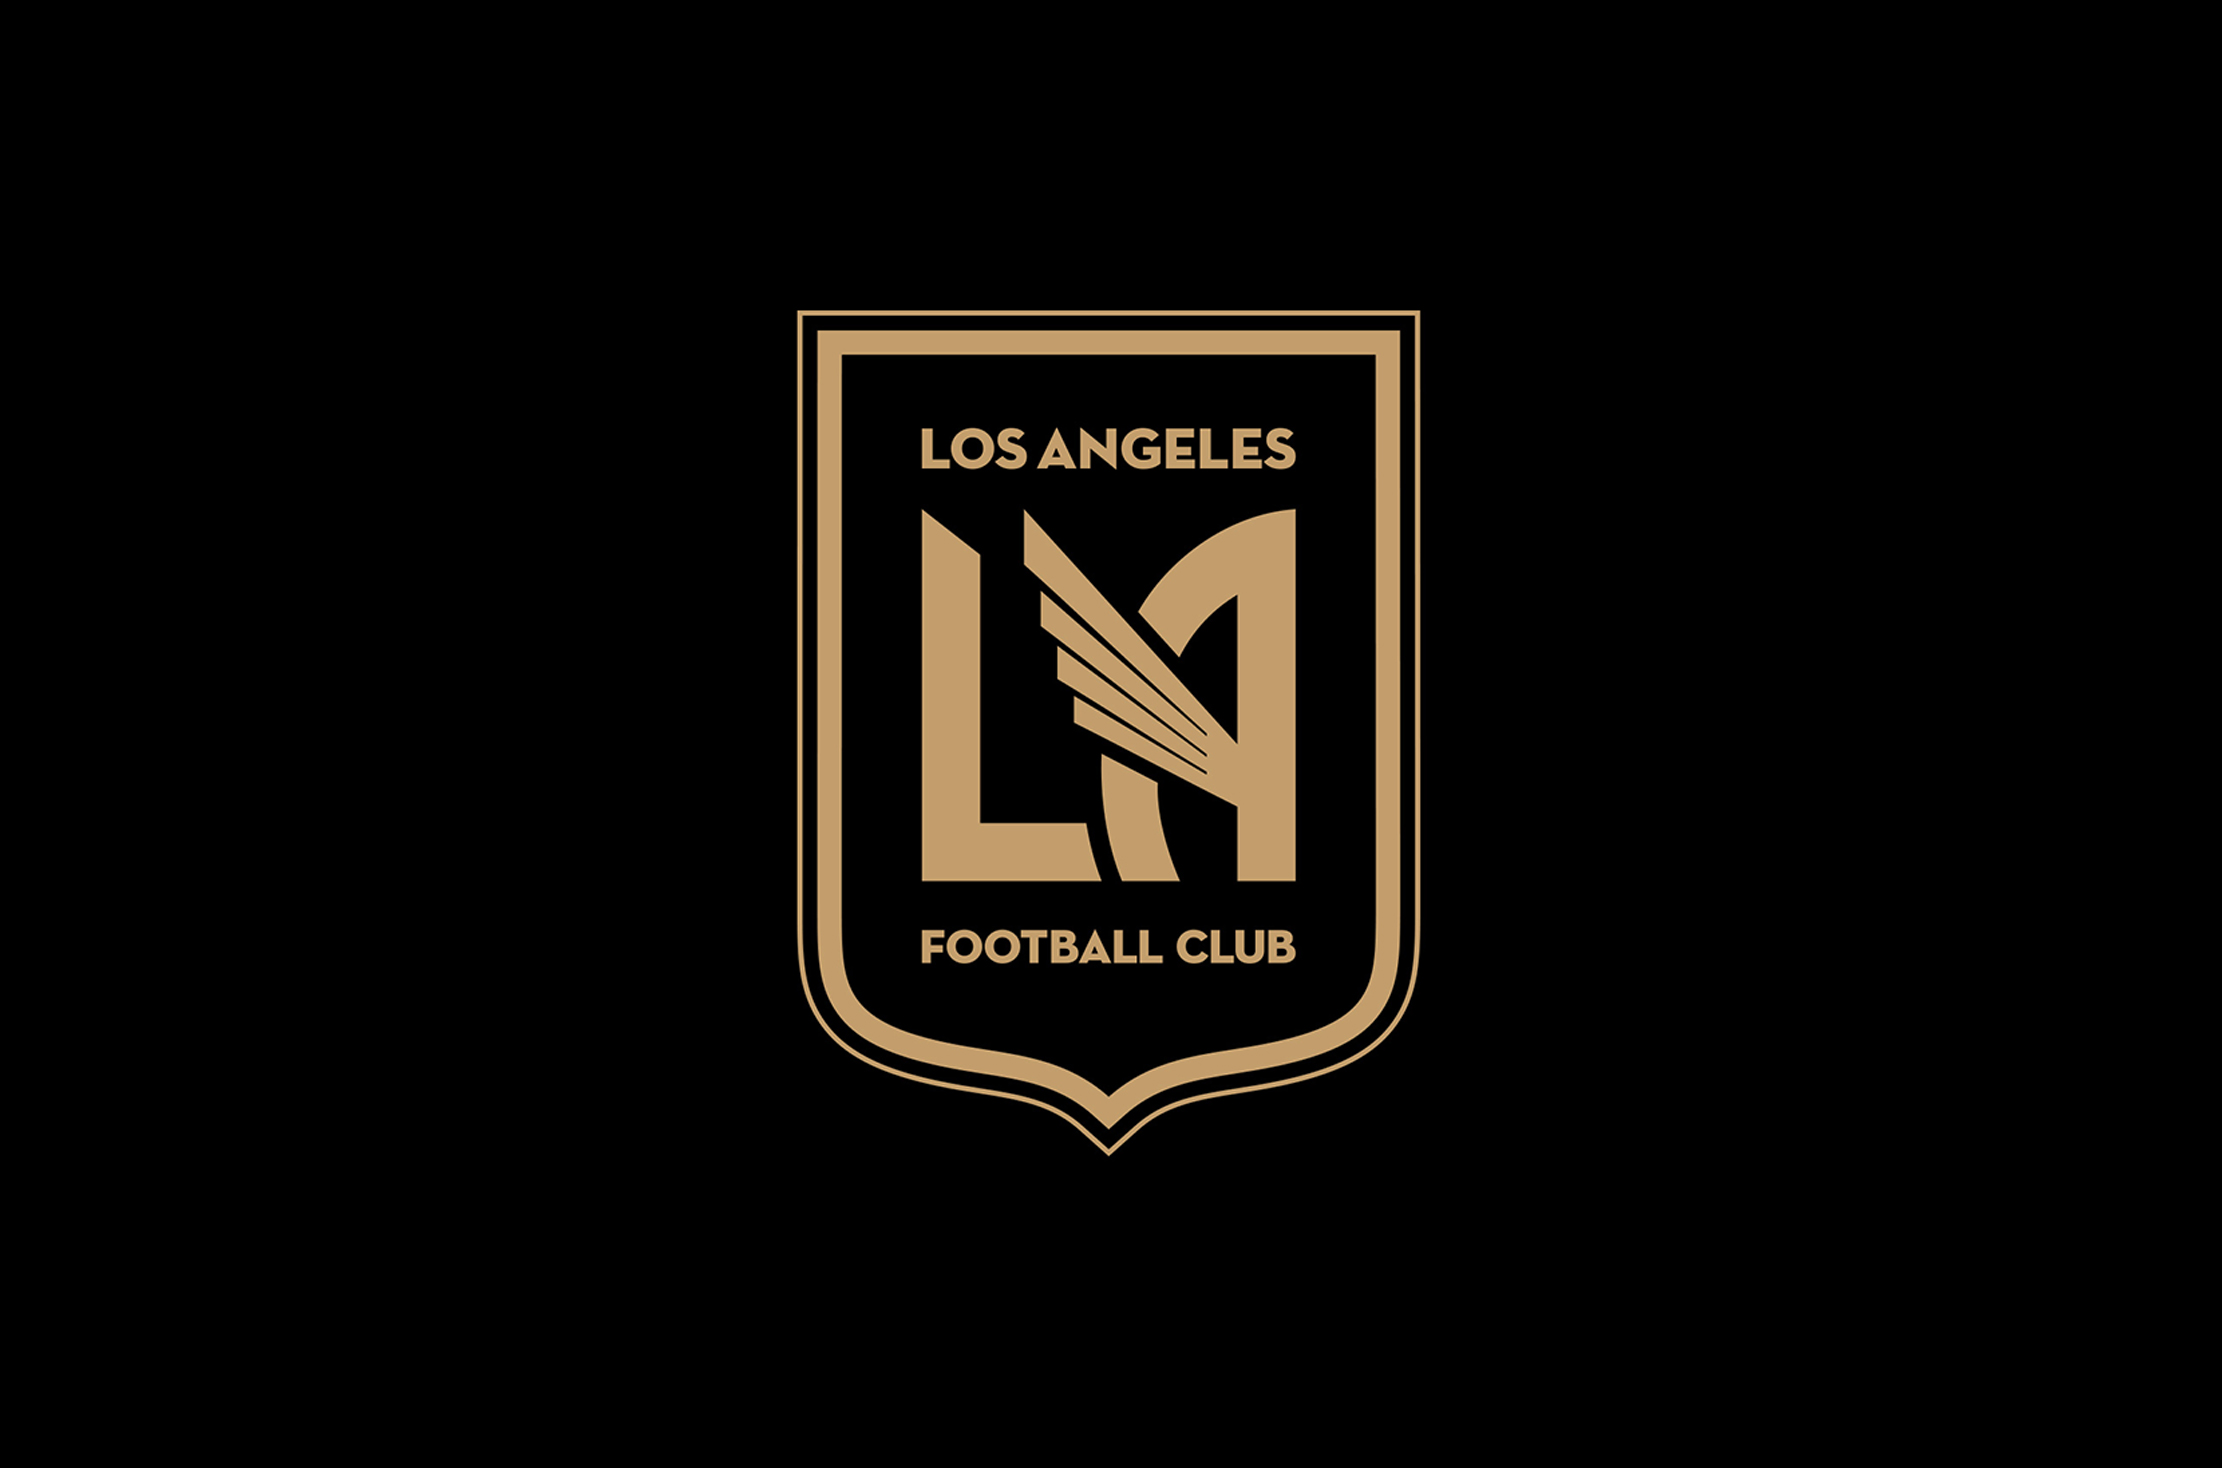 LAFC Badge, LAFC Logo, Matthew Wolff Design, Soccer, Football, Crest, Badge, Logo, Los Angeles FC, Club, Los Angeles Football Club, MLS, Adidas, Artist, Graphic Designer, Branding